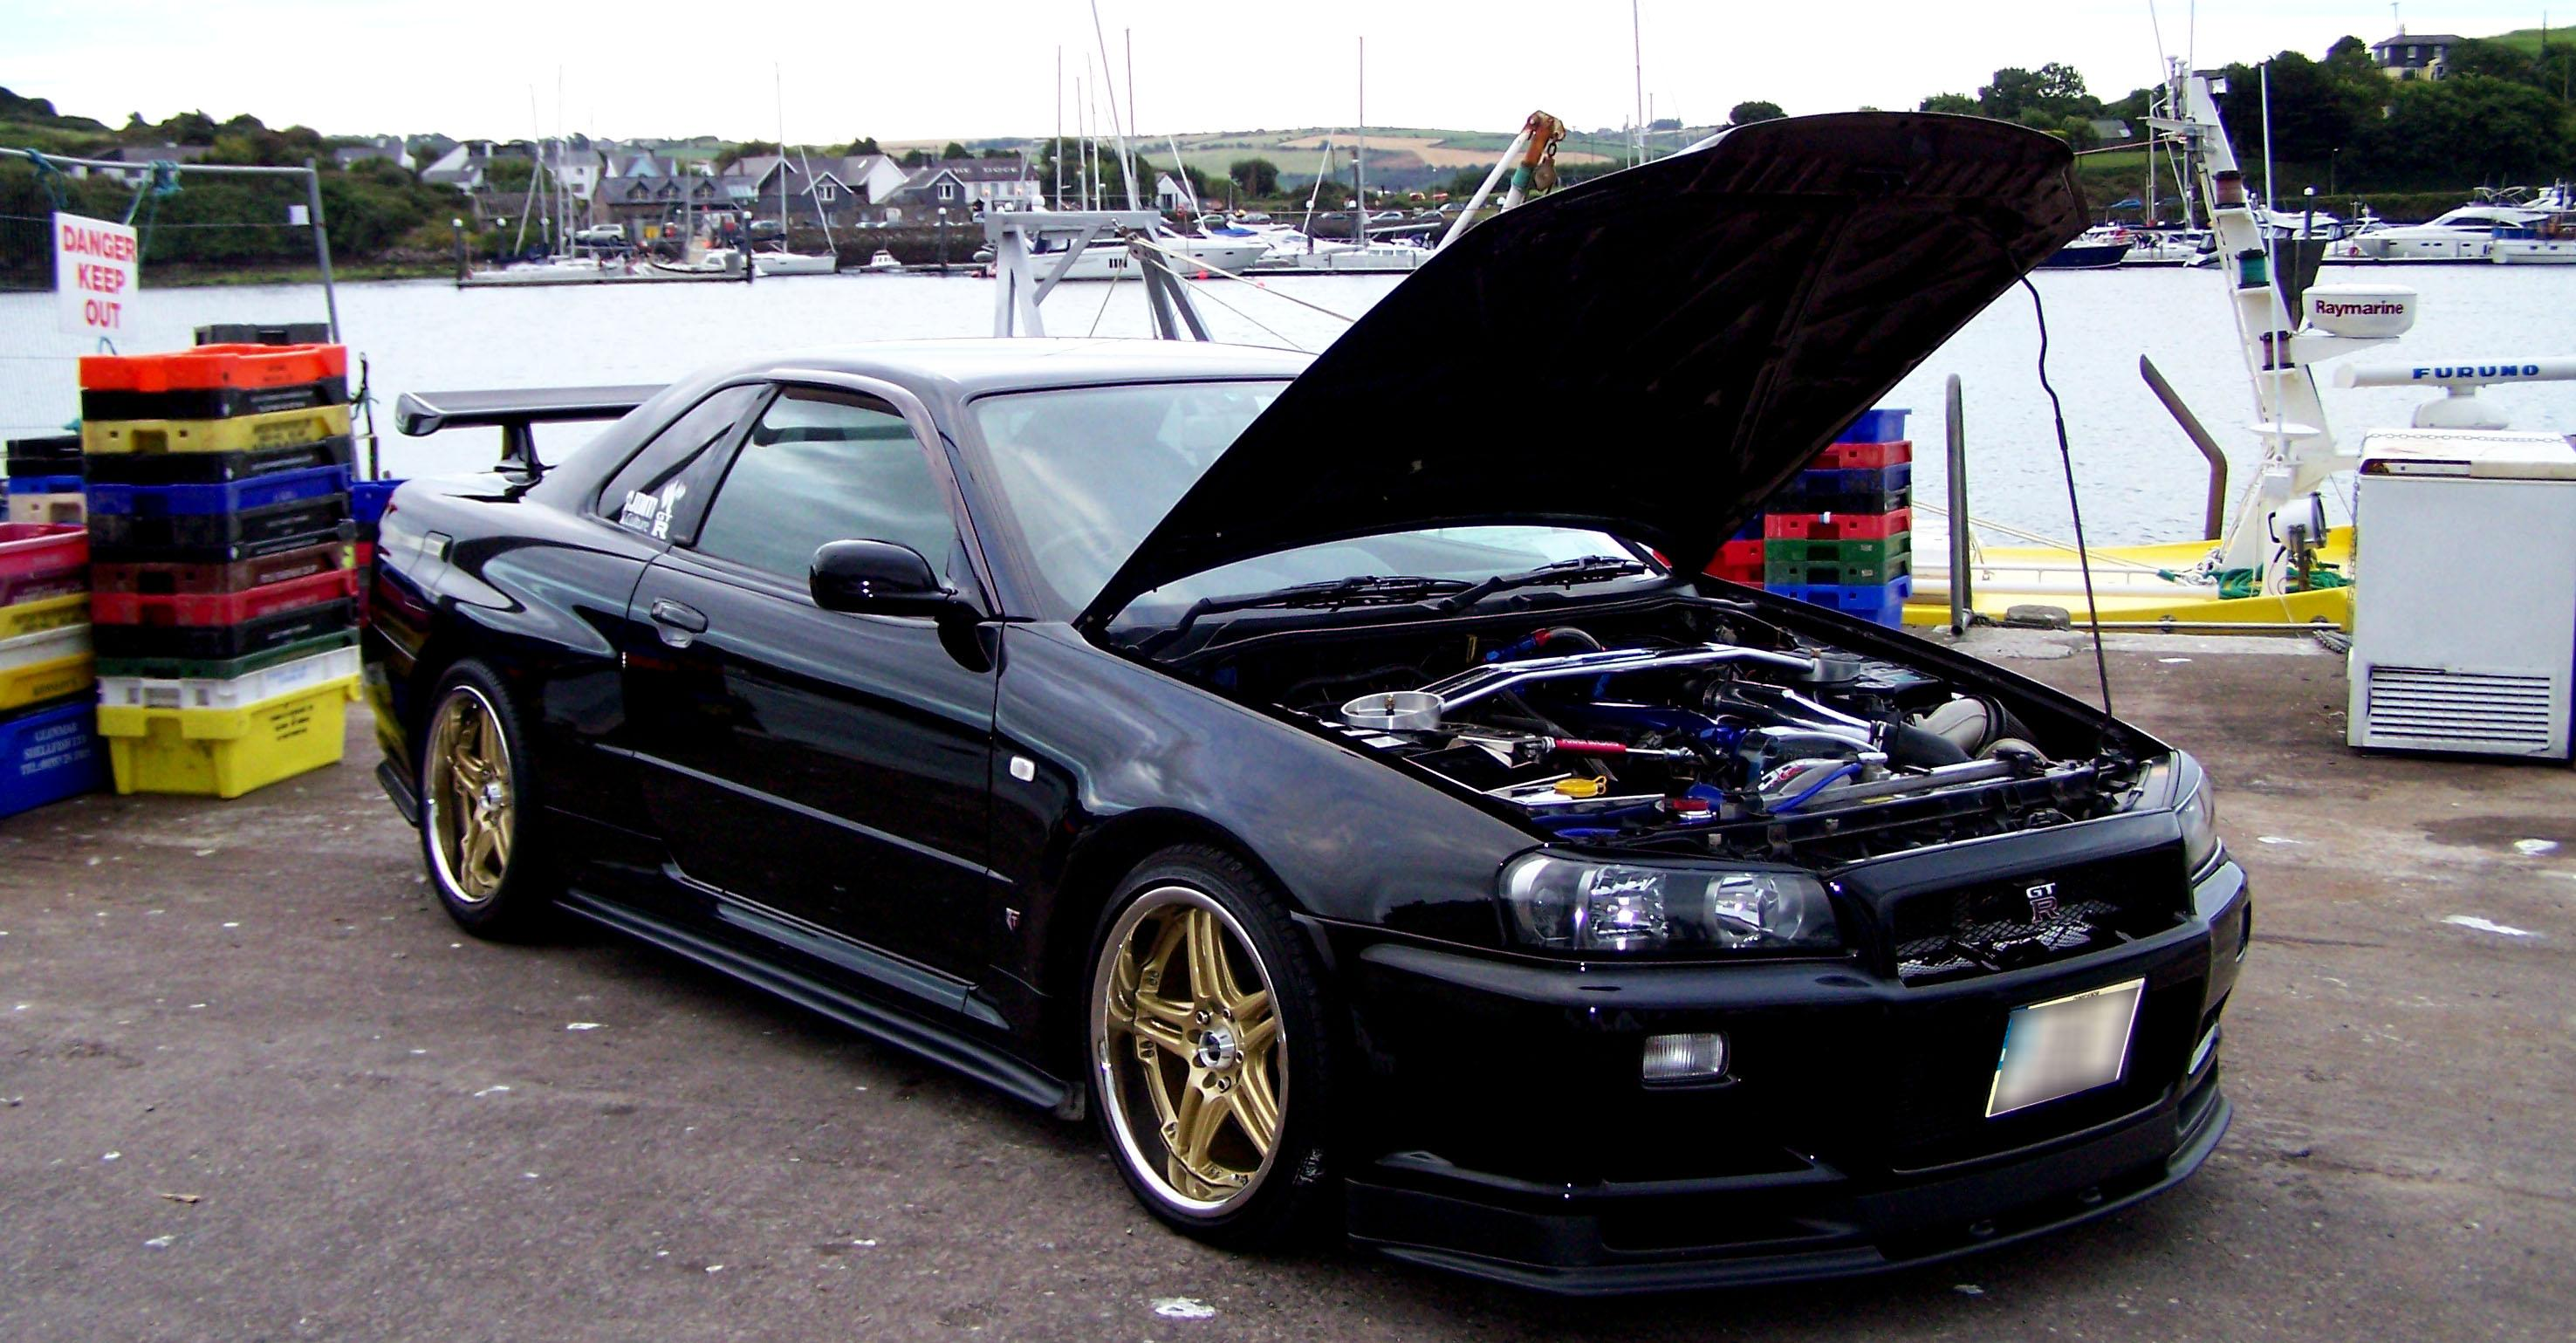 Nismo R34 1999 Nissan Skyline Specs s Modification Info at